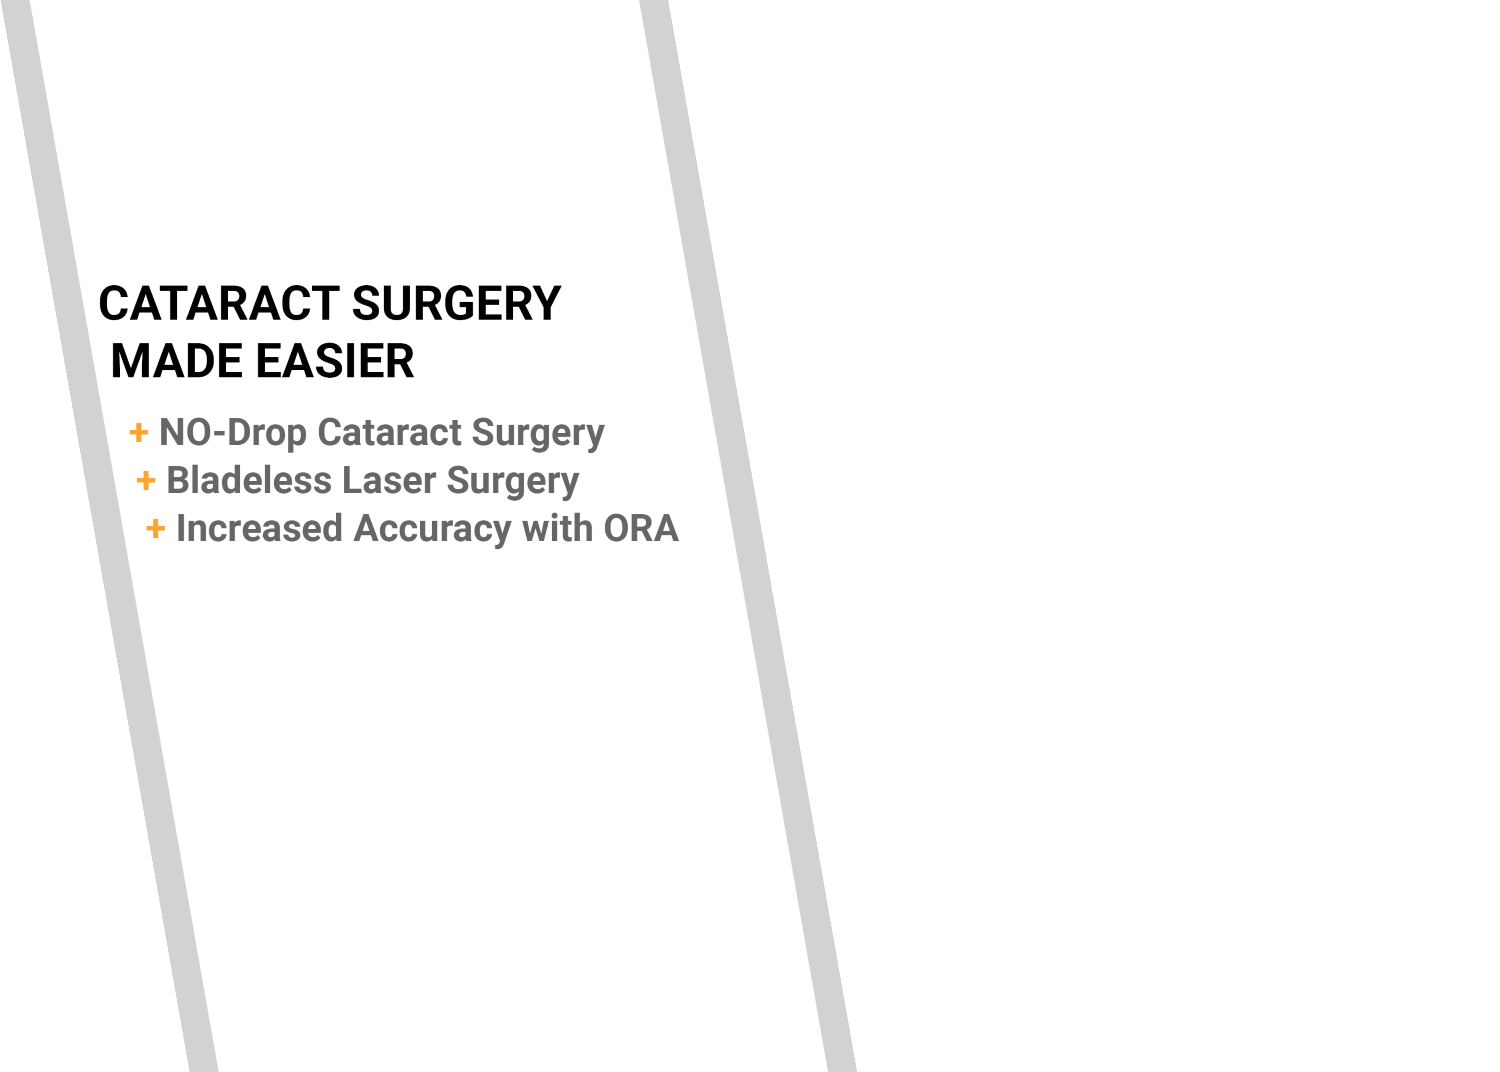 Cataract Surgery Made Easier